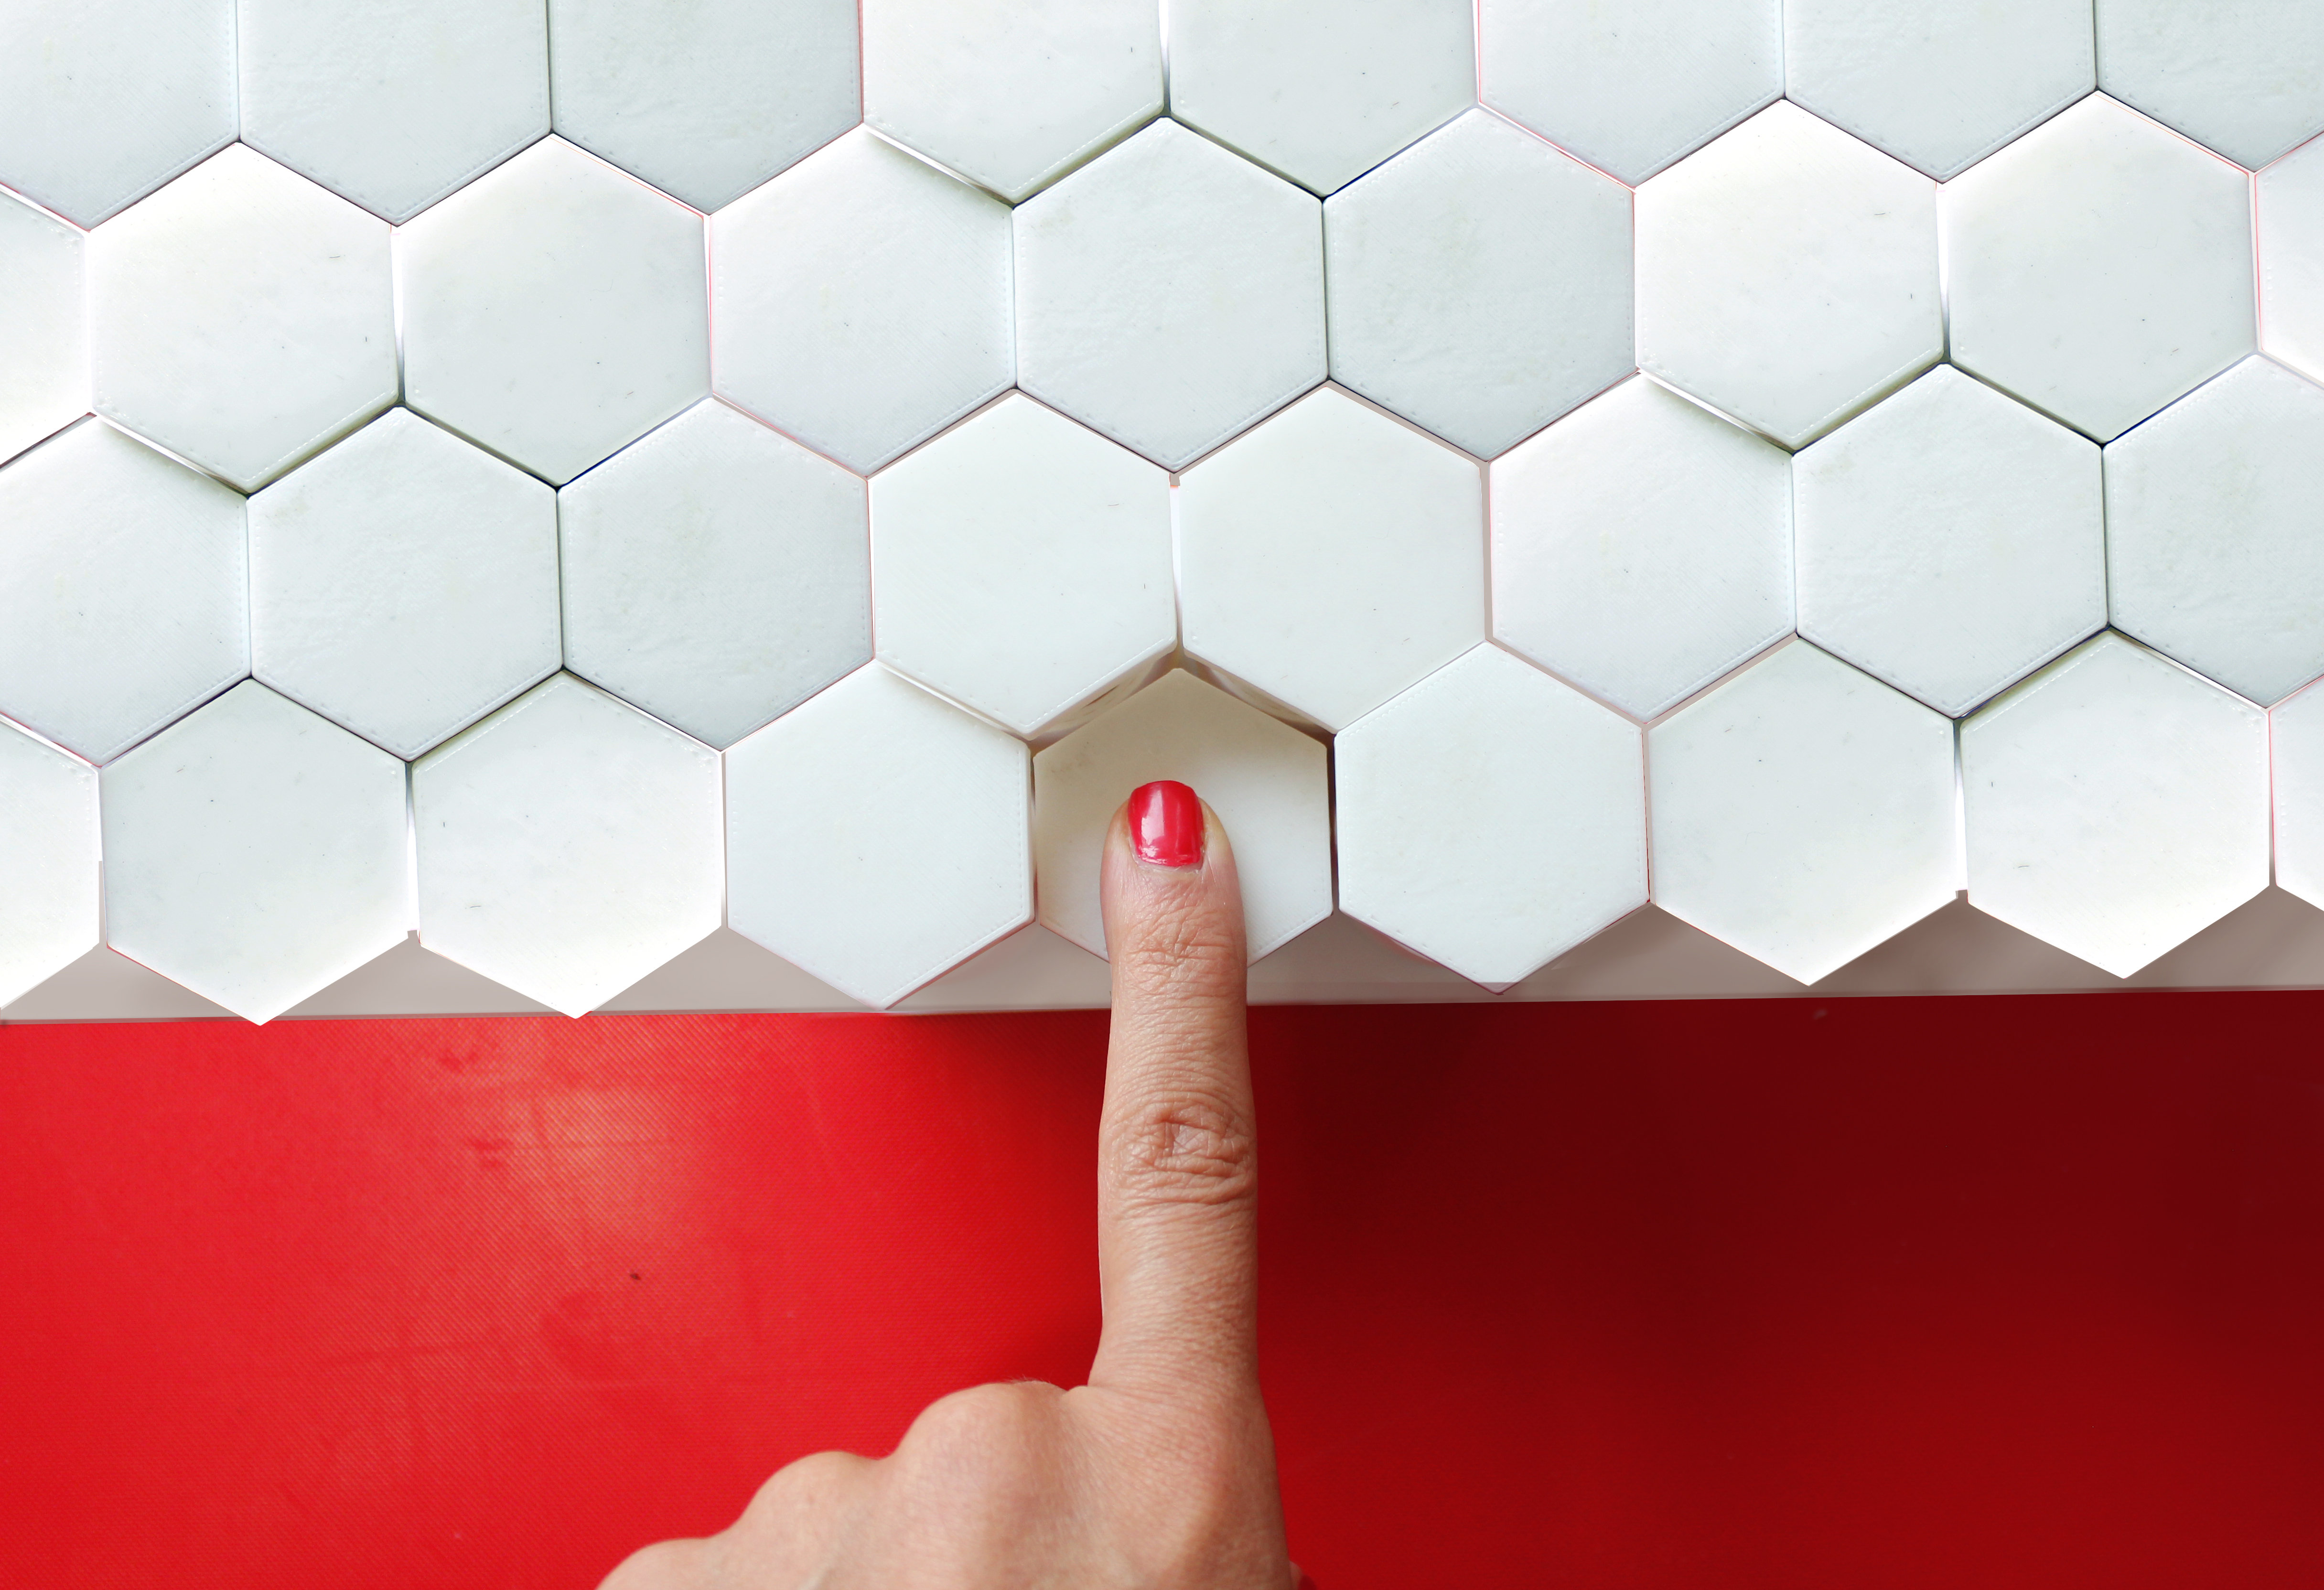 Sahar Madanat Design's Pushpin Dynamic Surface